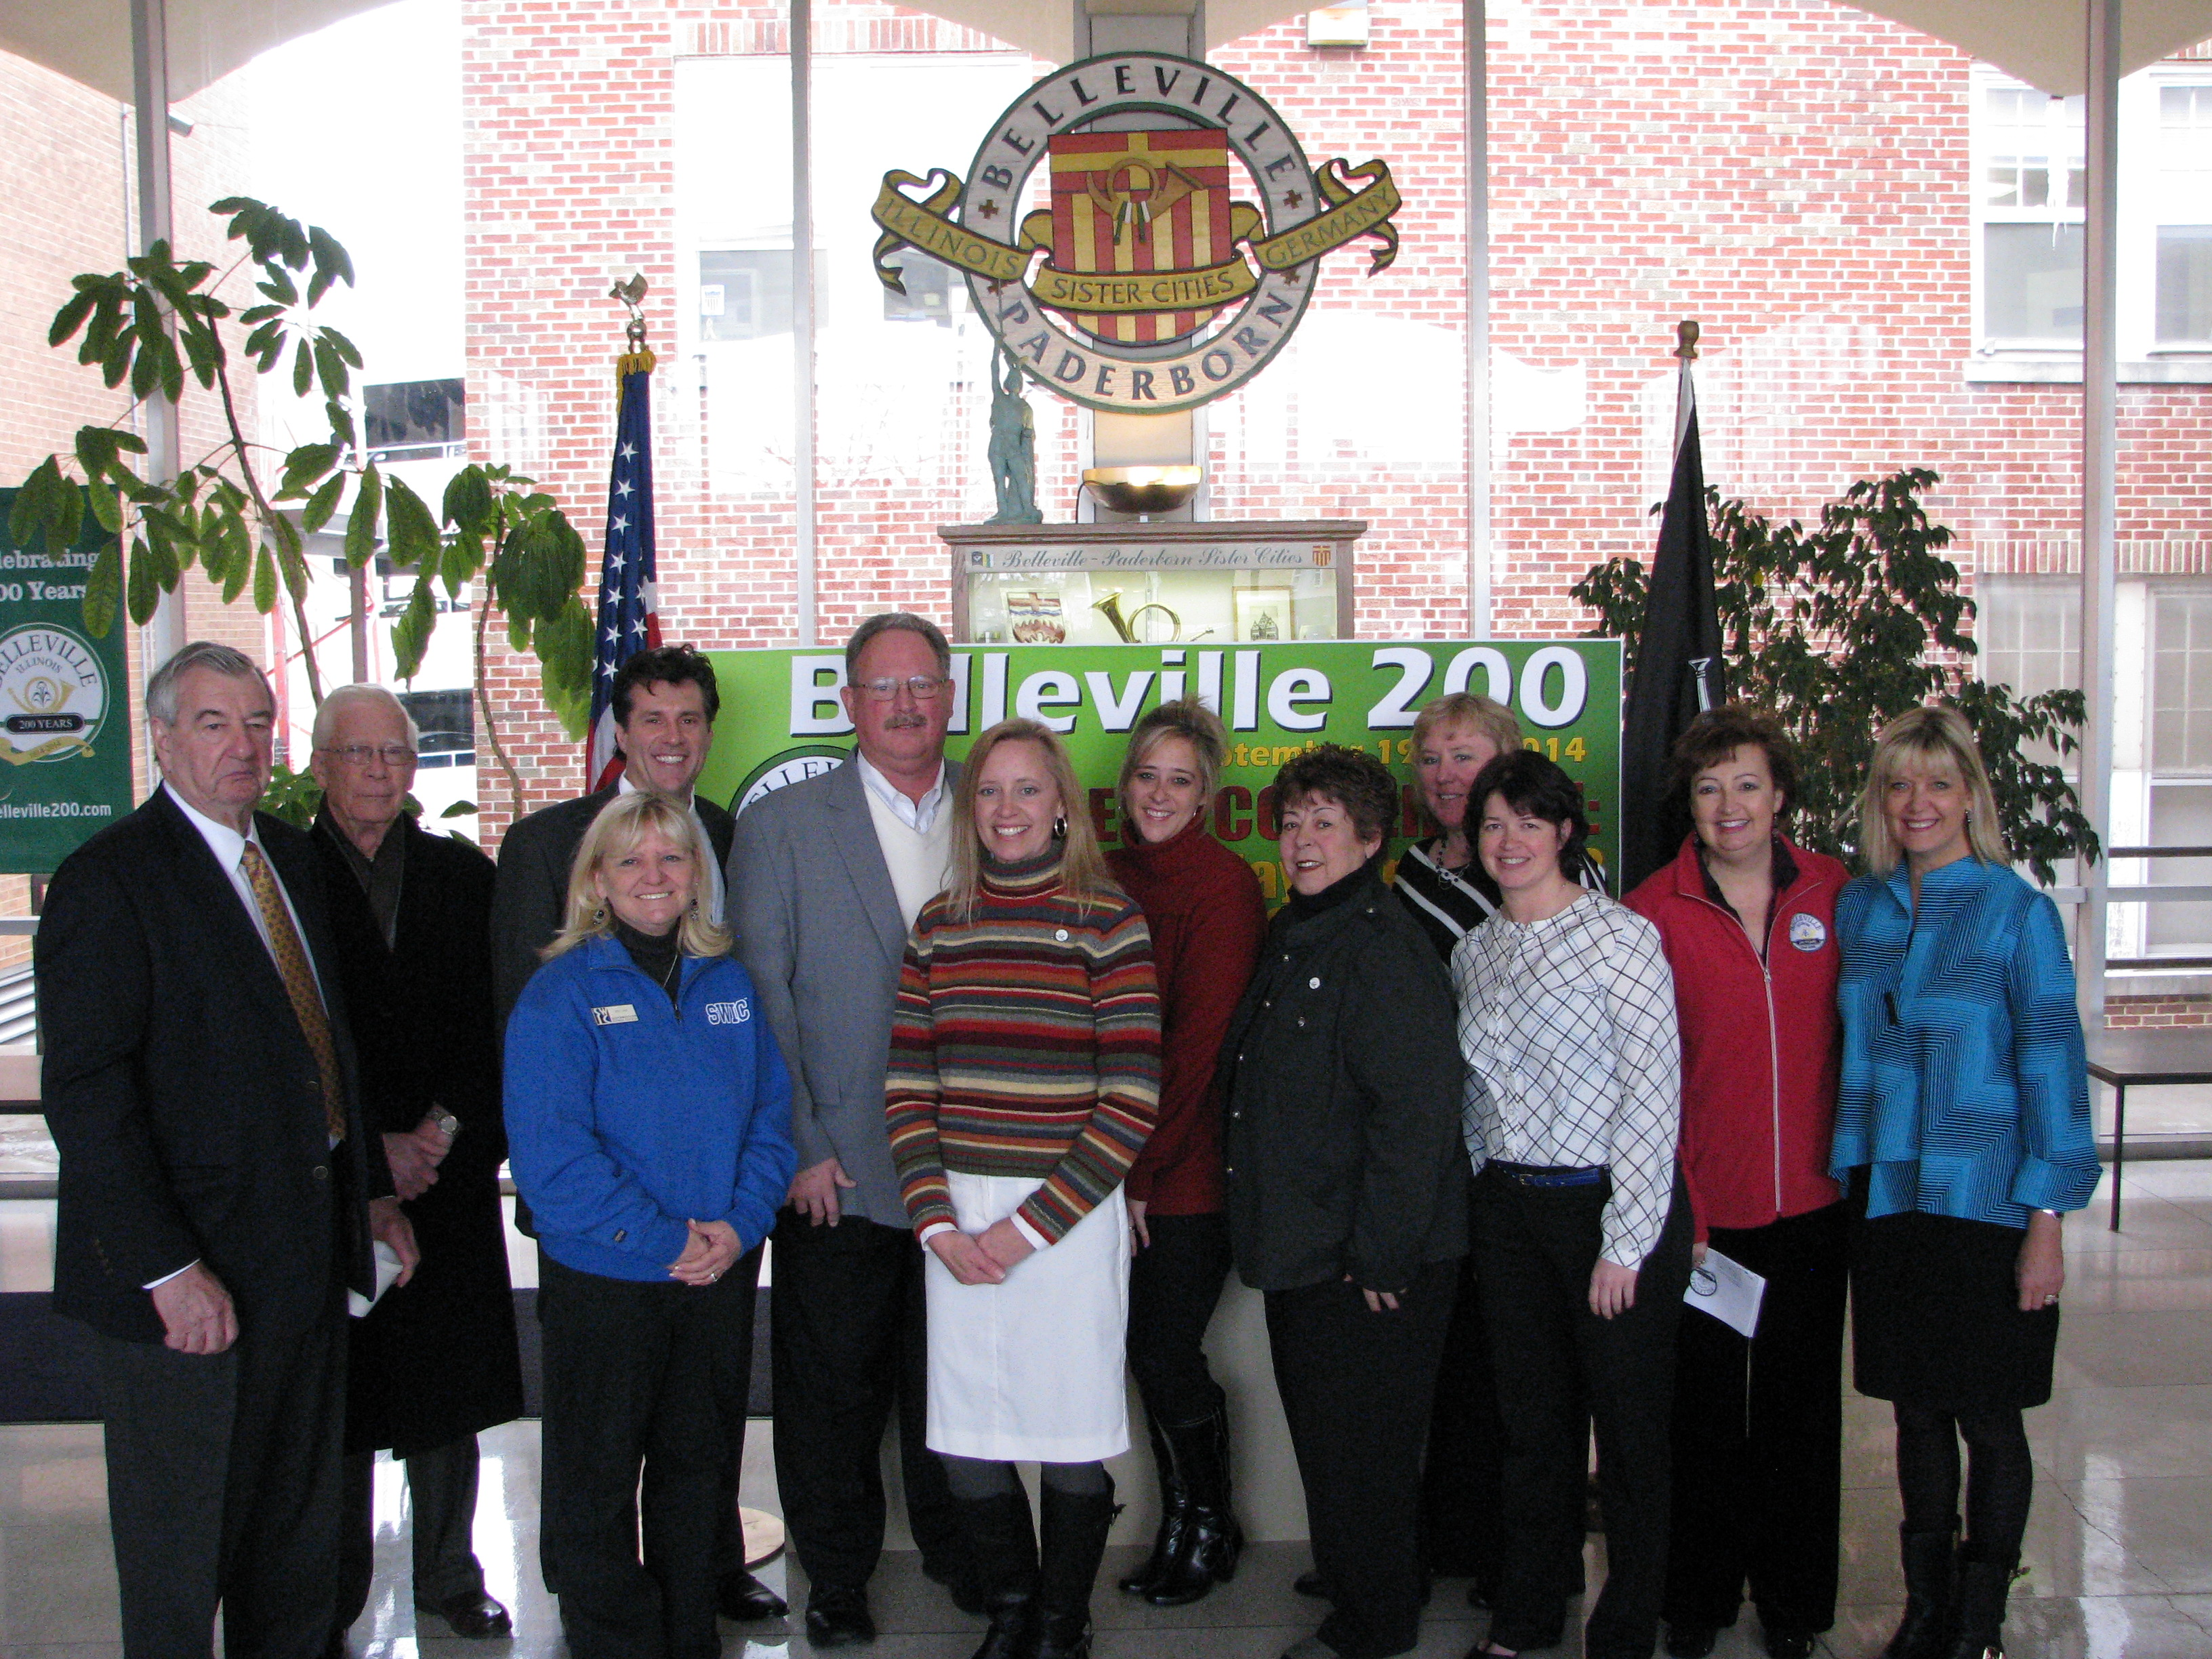 Members of the Belleville 200 Committee